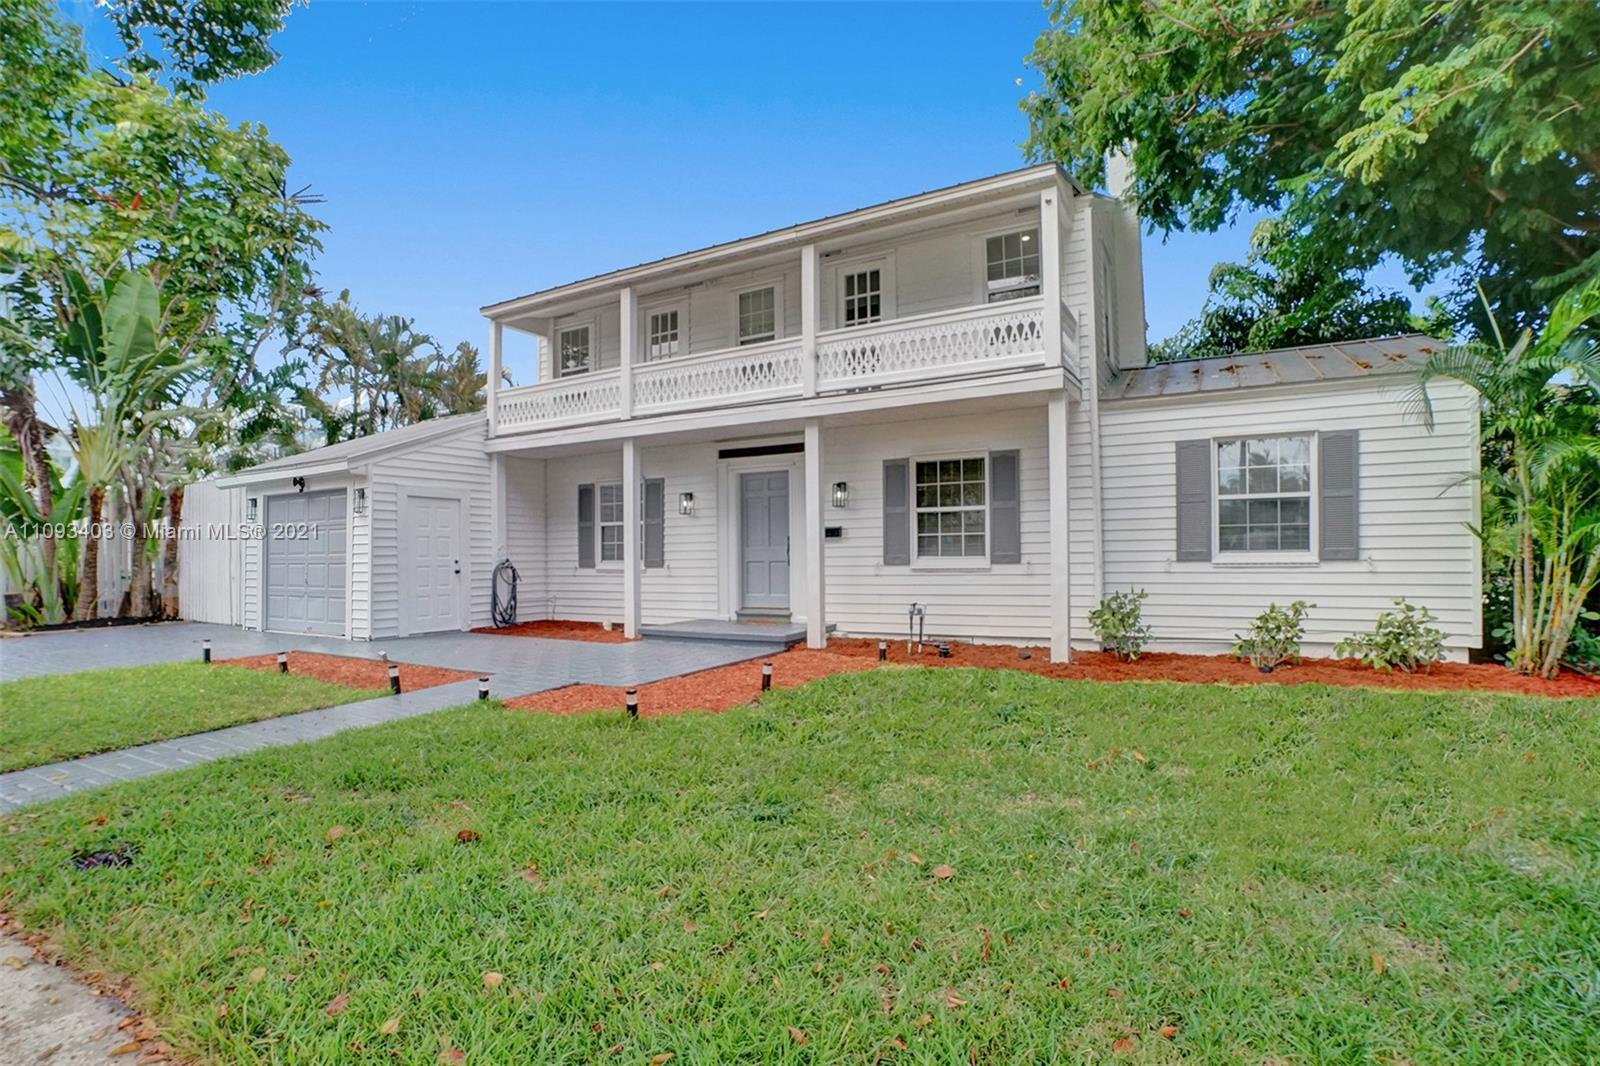 Fabulous corner home will be completely renovated and remodeled. It is one of the West Palm Beach's